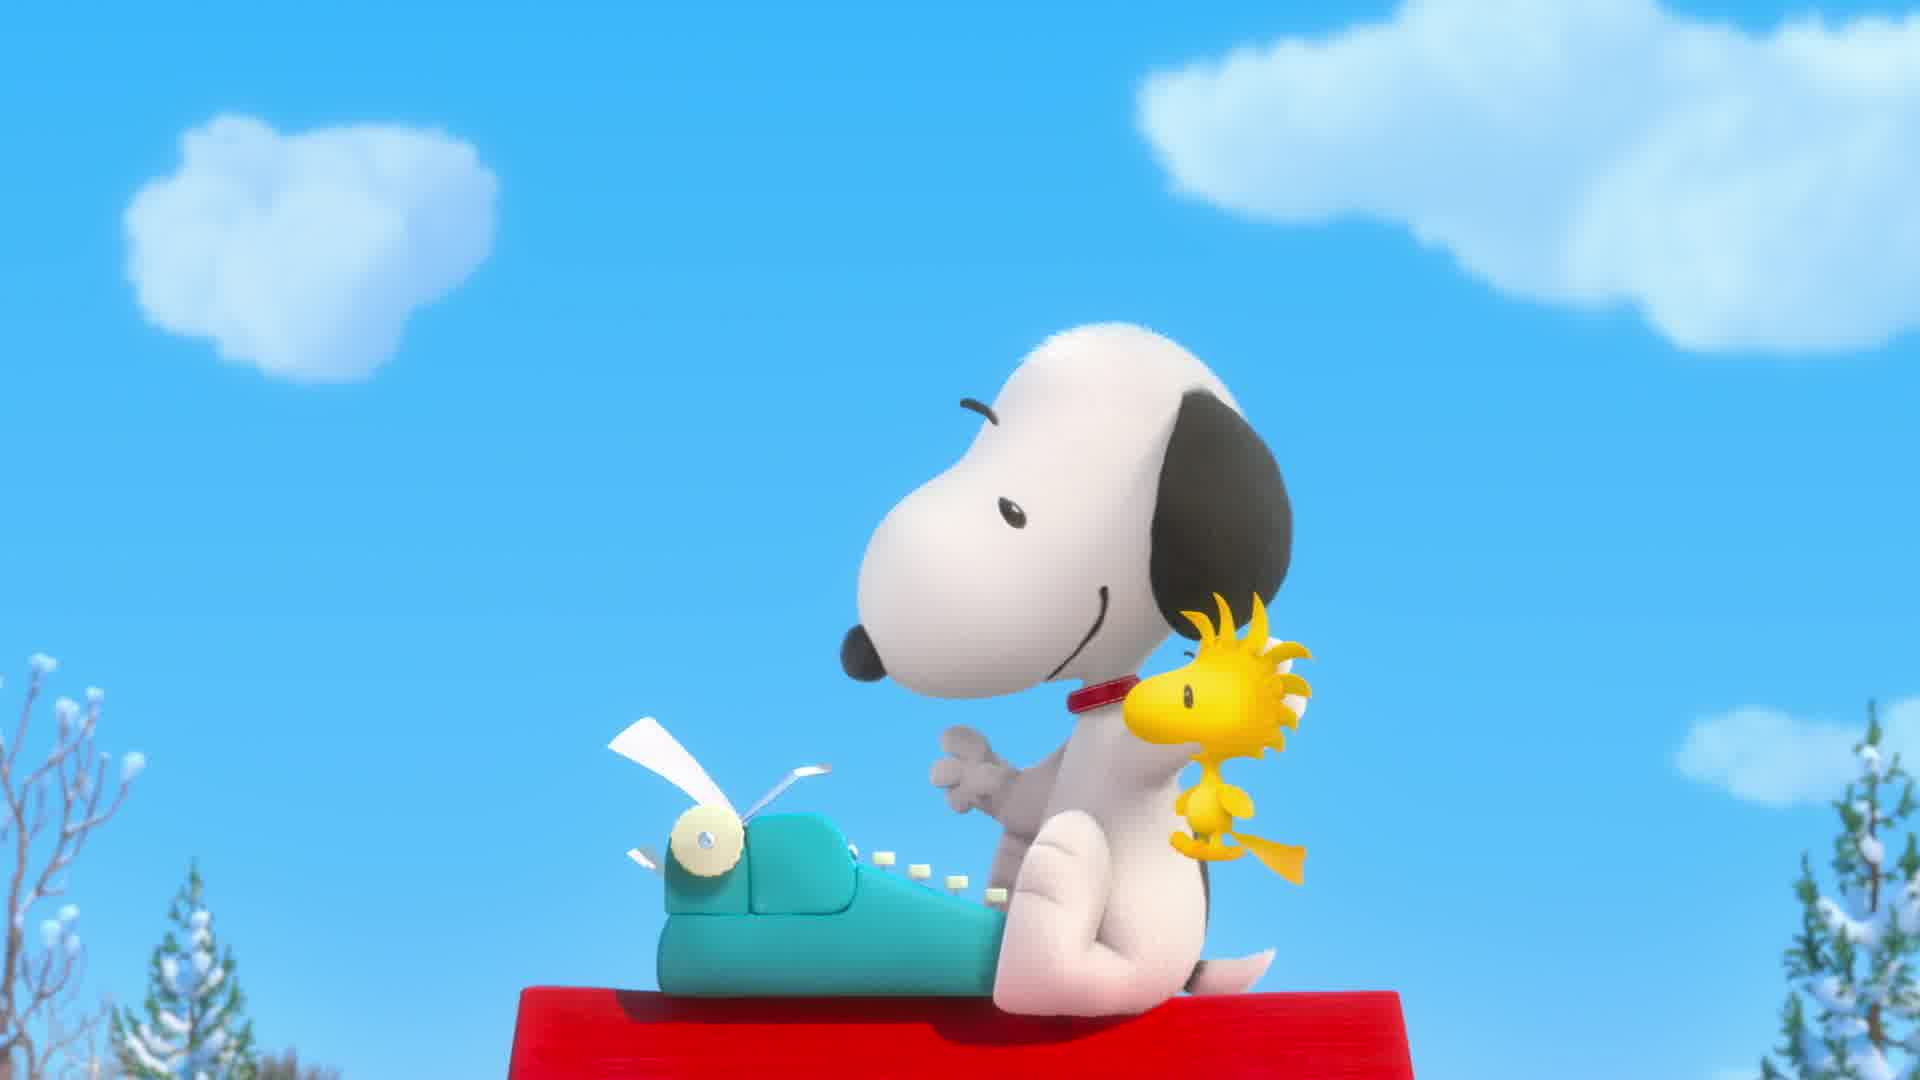 Images of The Peanuts | 1920x1080